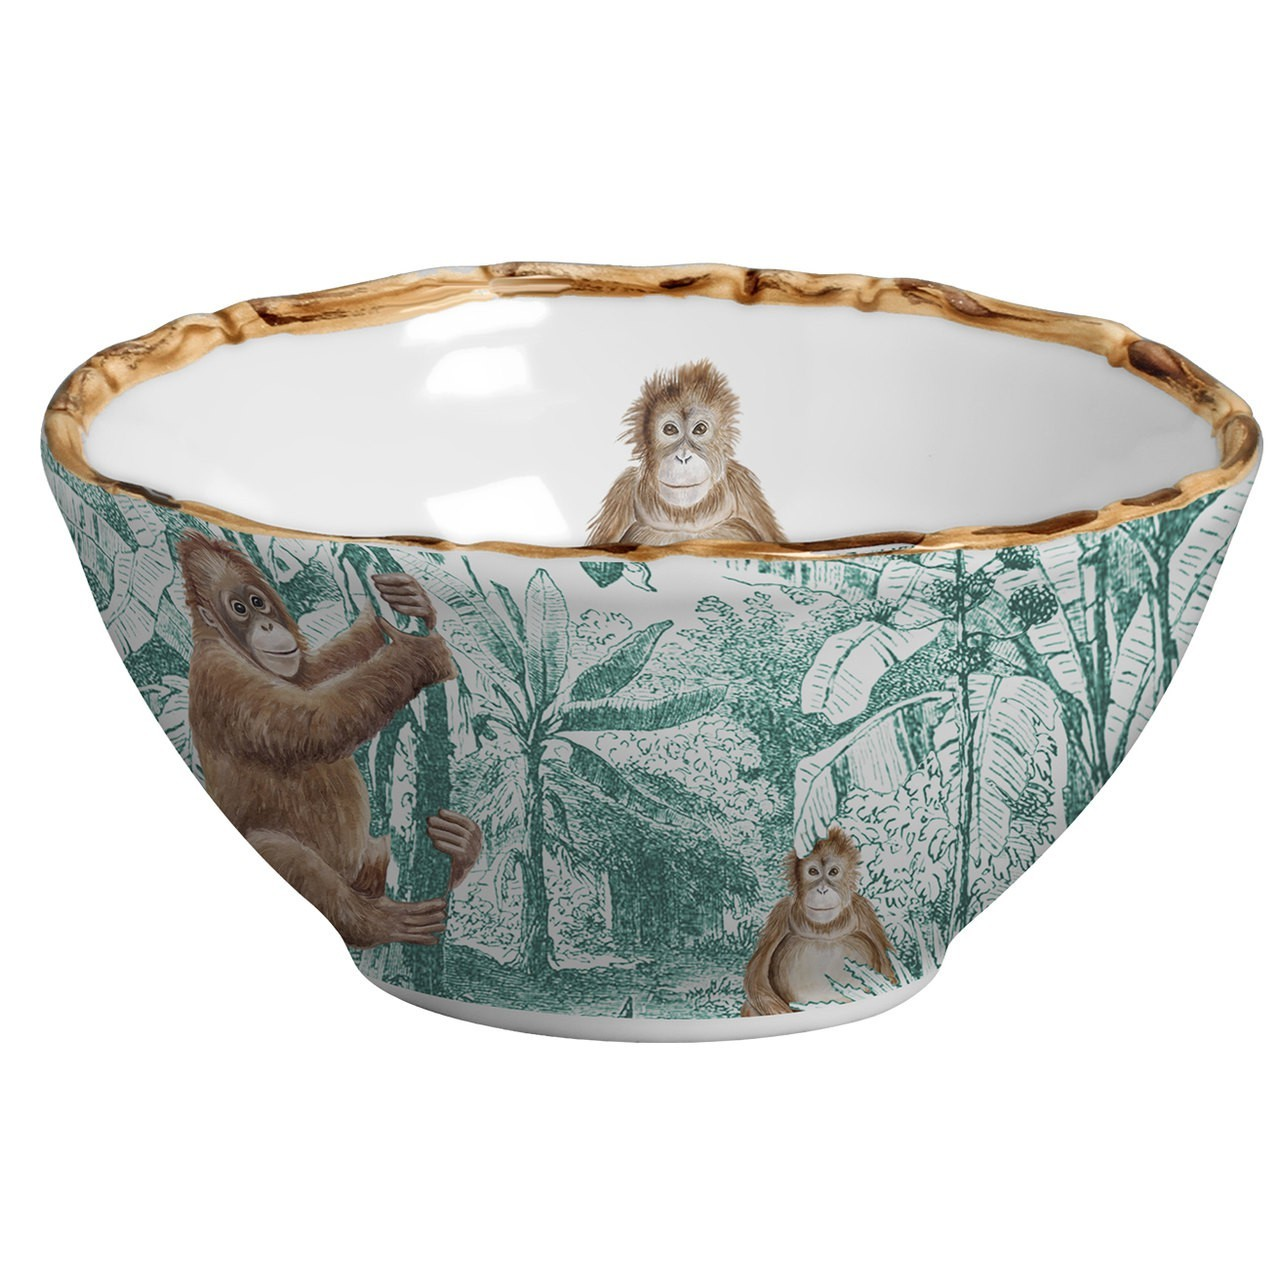 Bowl Macaco African Toile (06 Unidades) Cód.: 6106 - MB